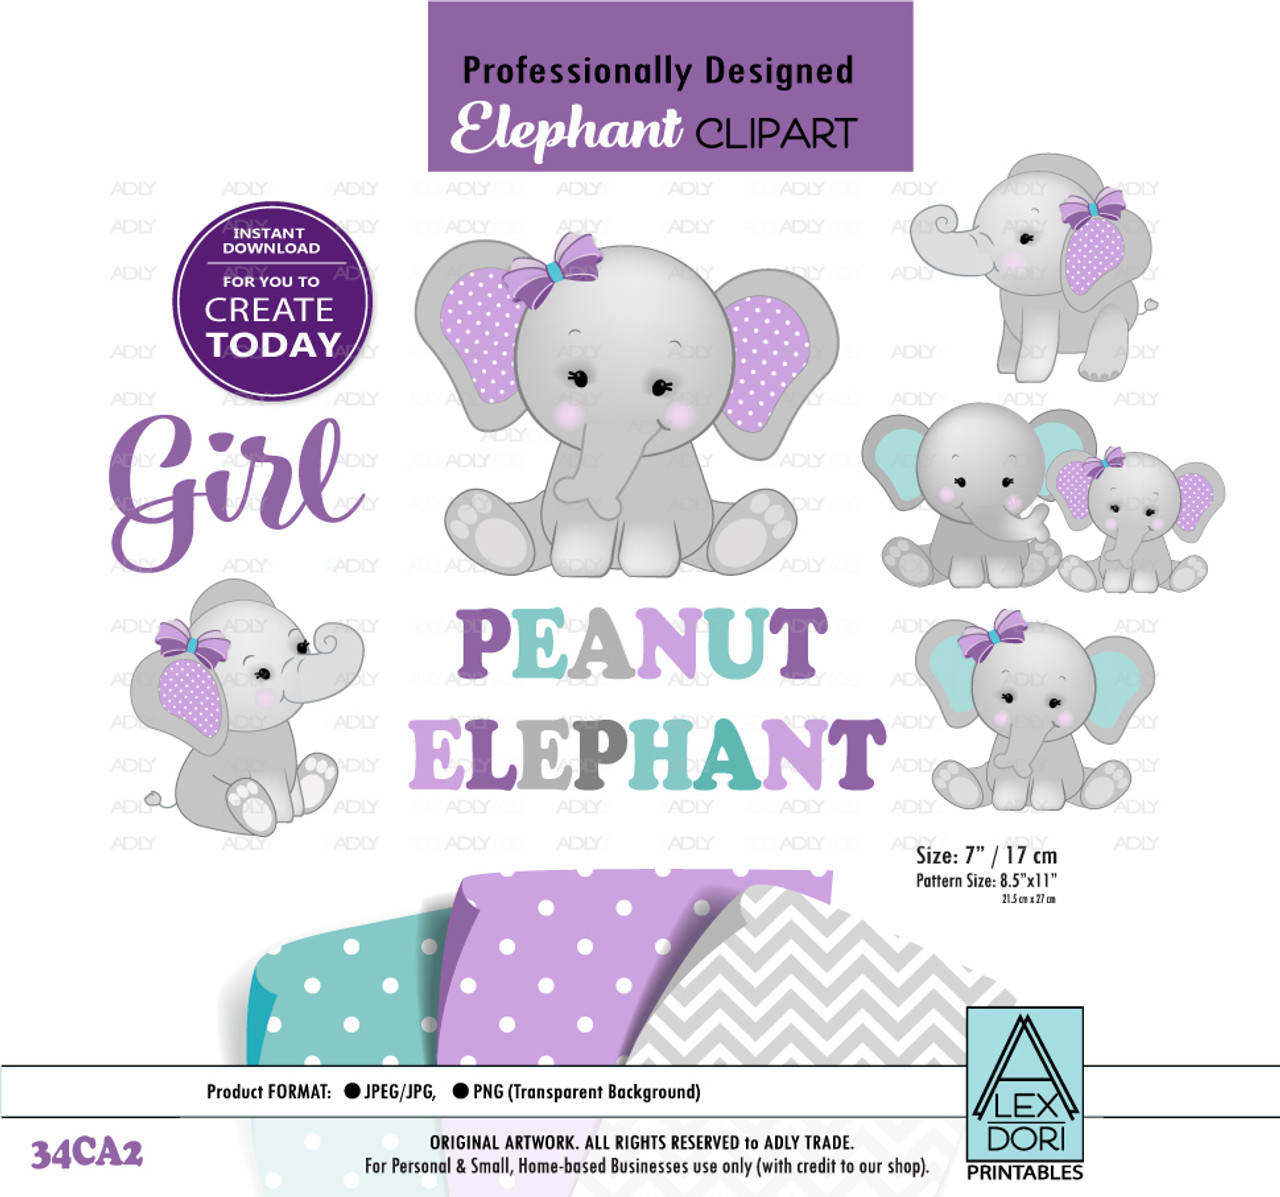 medium resolution of peanut elephant mommy and baby digital clipart baby elephant girl clipart purple gray teal turquoise clipart png jpeg adly invitations and digital party